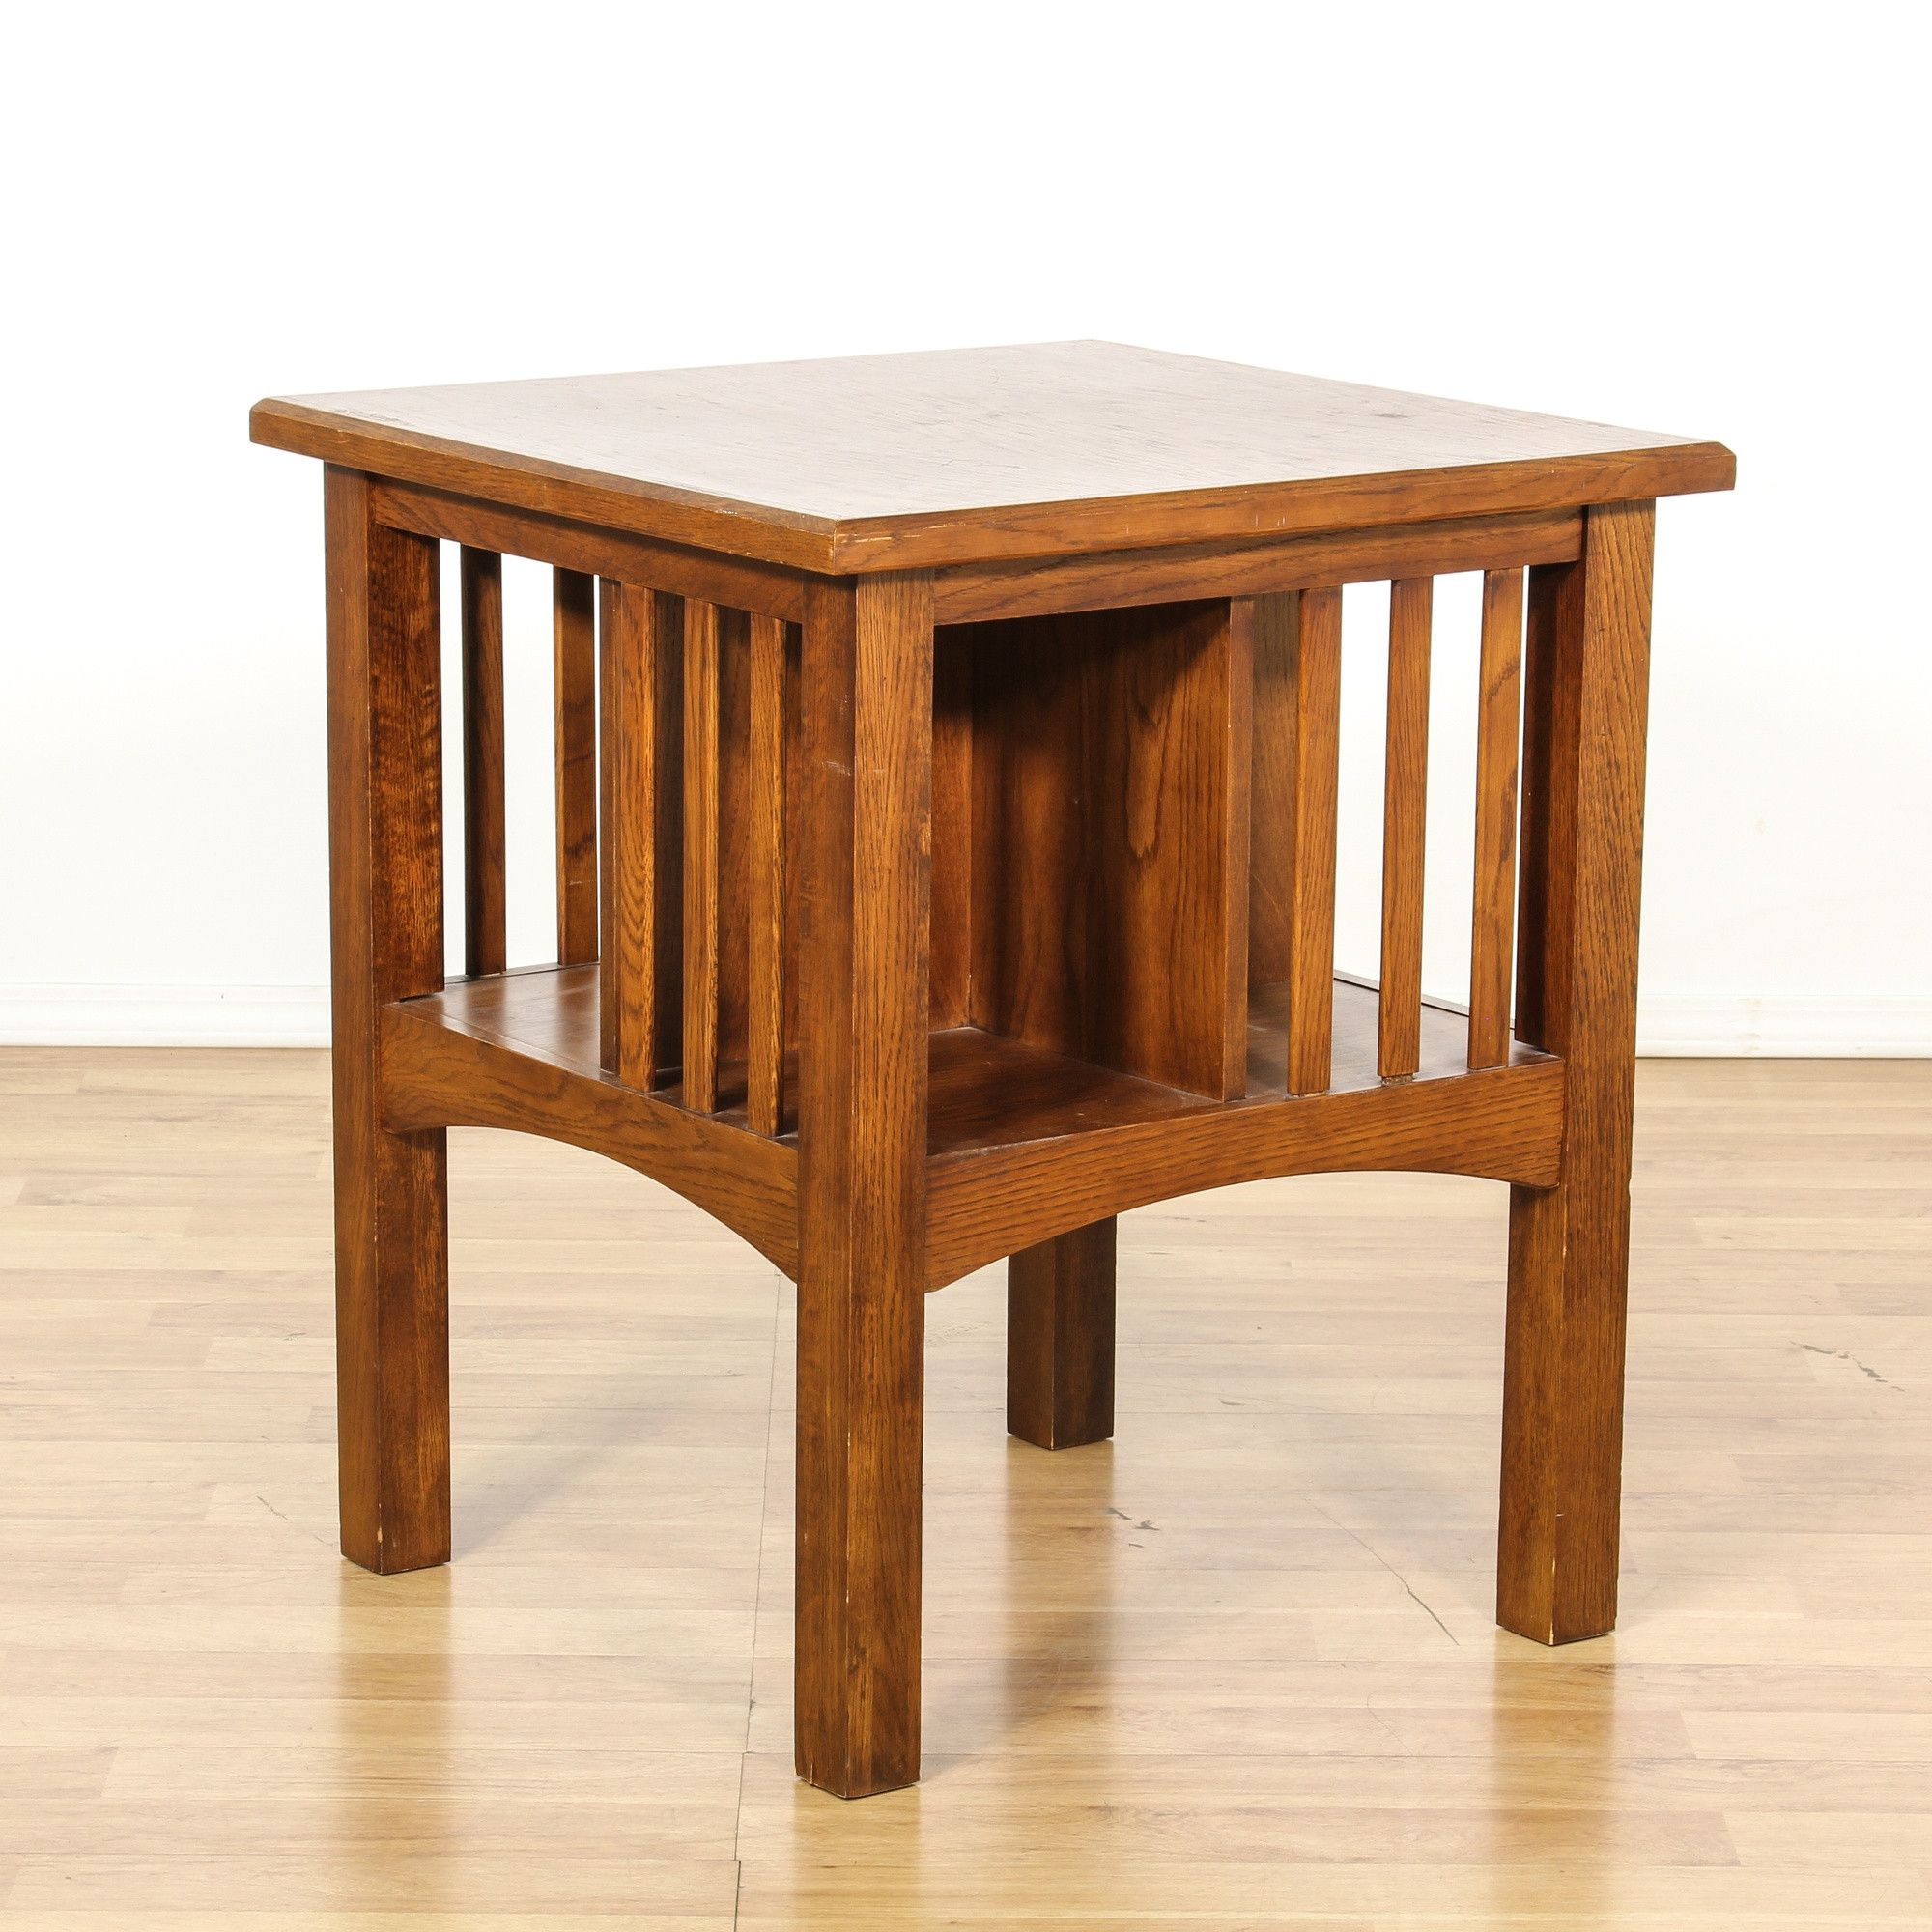 8 Mission Style End Tables Balloondir In 2020 Mission Style End Tables End Tables Oak End Tables